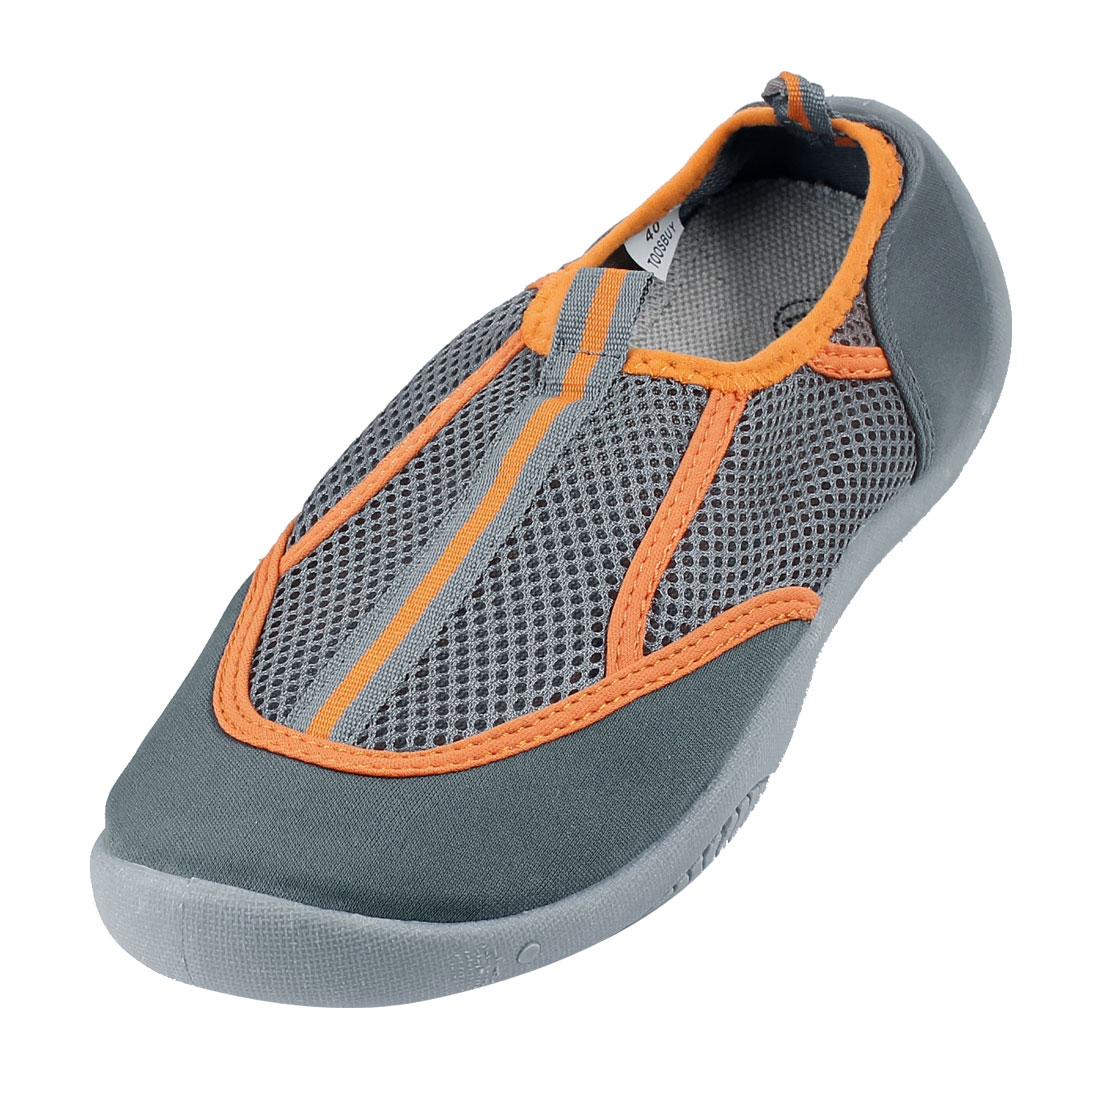 Gray Orange Round Toe Non-skid Sole Low Platform Flat Beach Mesh Shoes US 6 for Lady